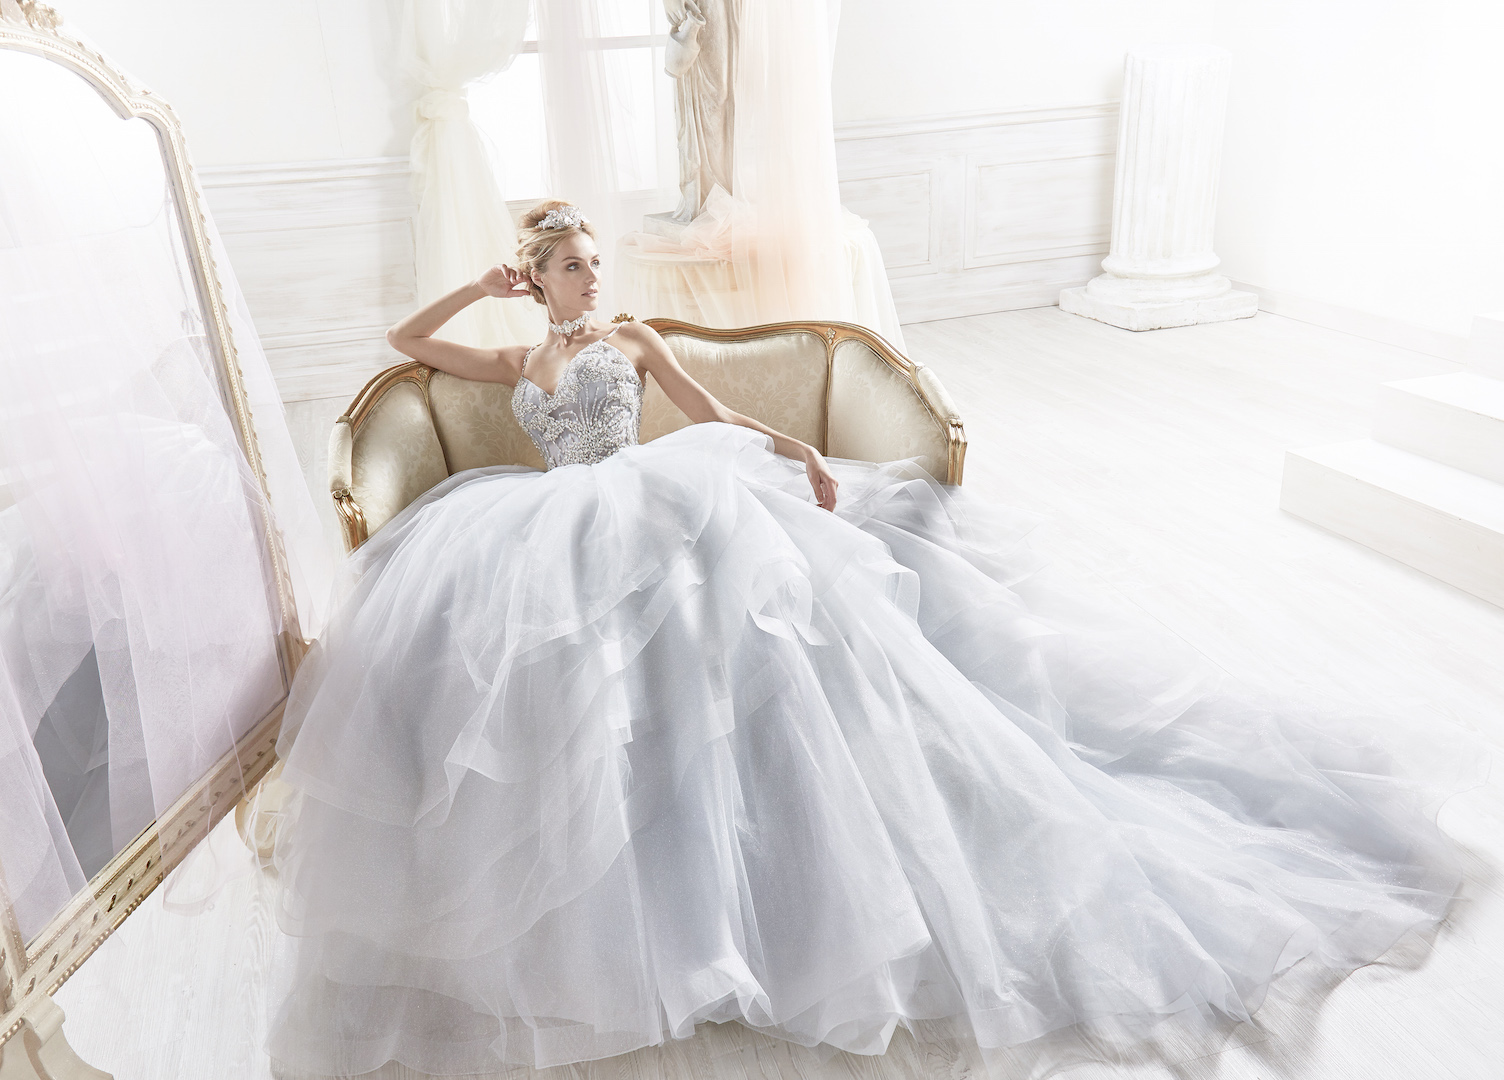 Nicole 2018 bridal collection the neverending story for A storybook ending bridal prom salon